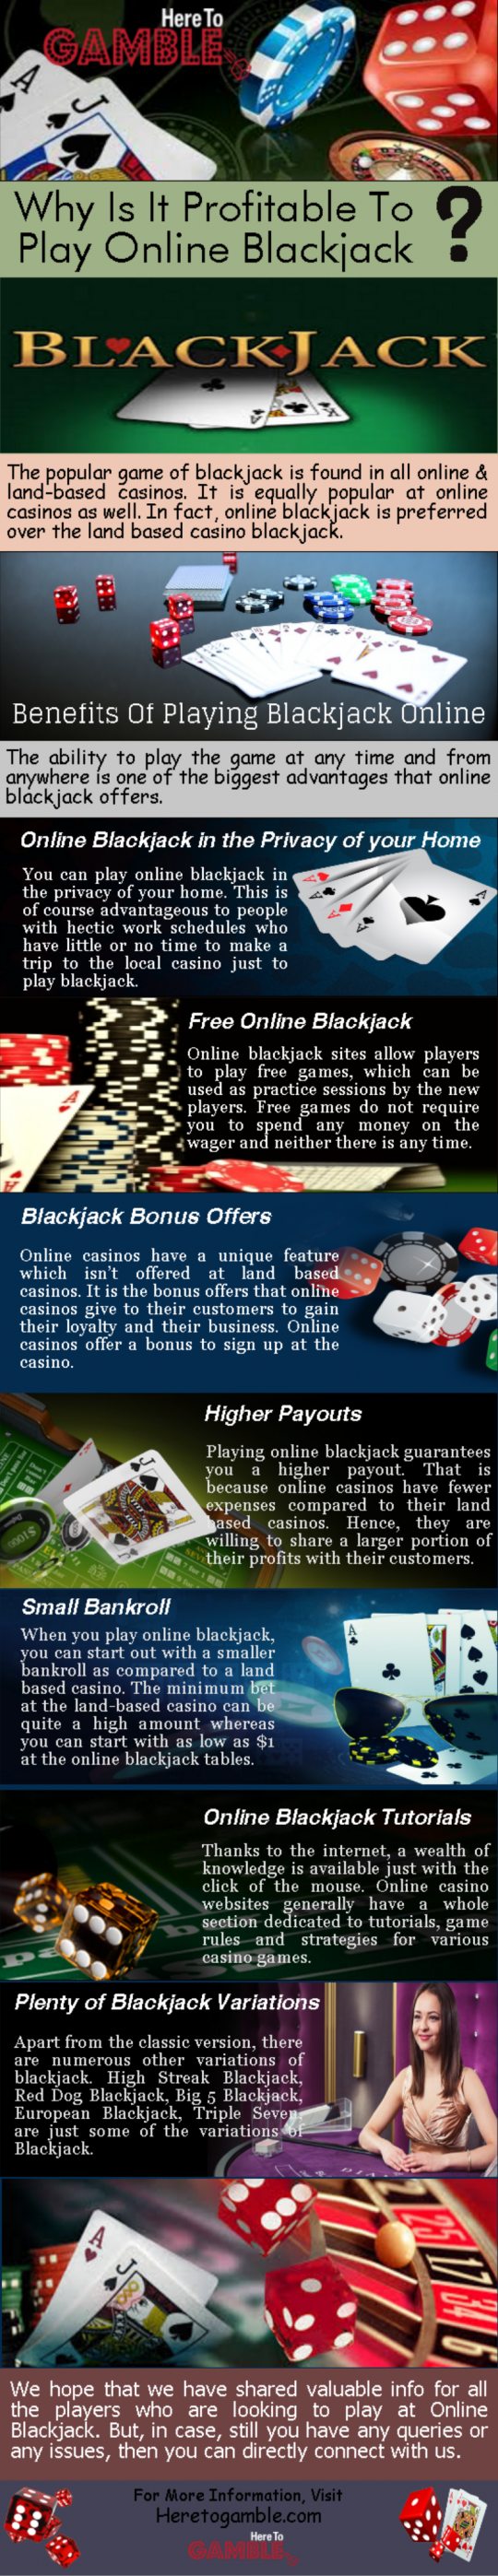 Blackjack taxi